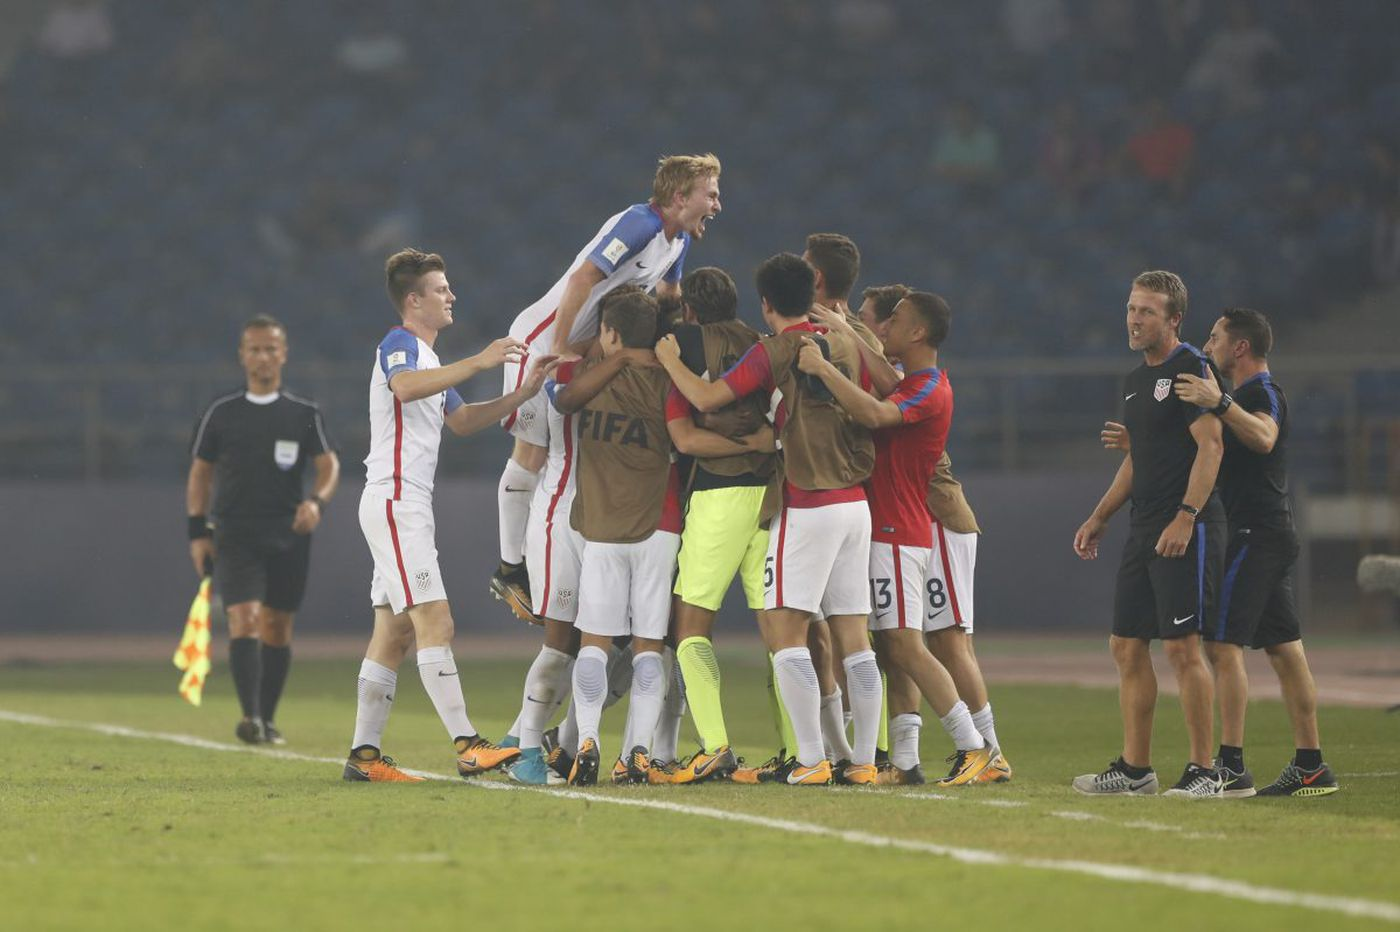 U.S. run in Under-17 World Cup brings hope for American soccer fans